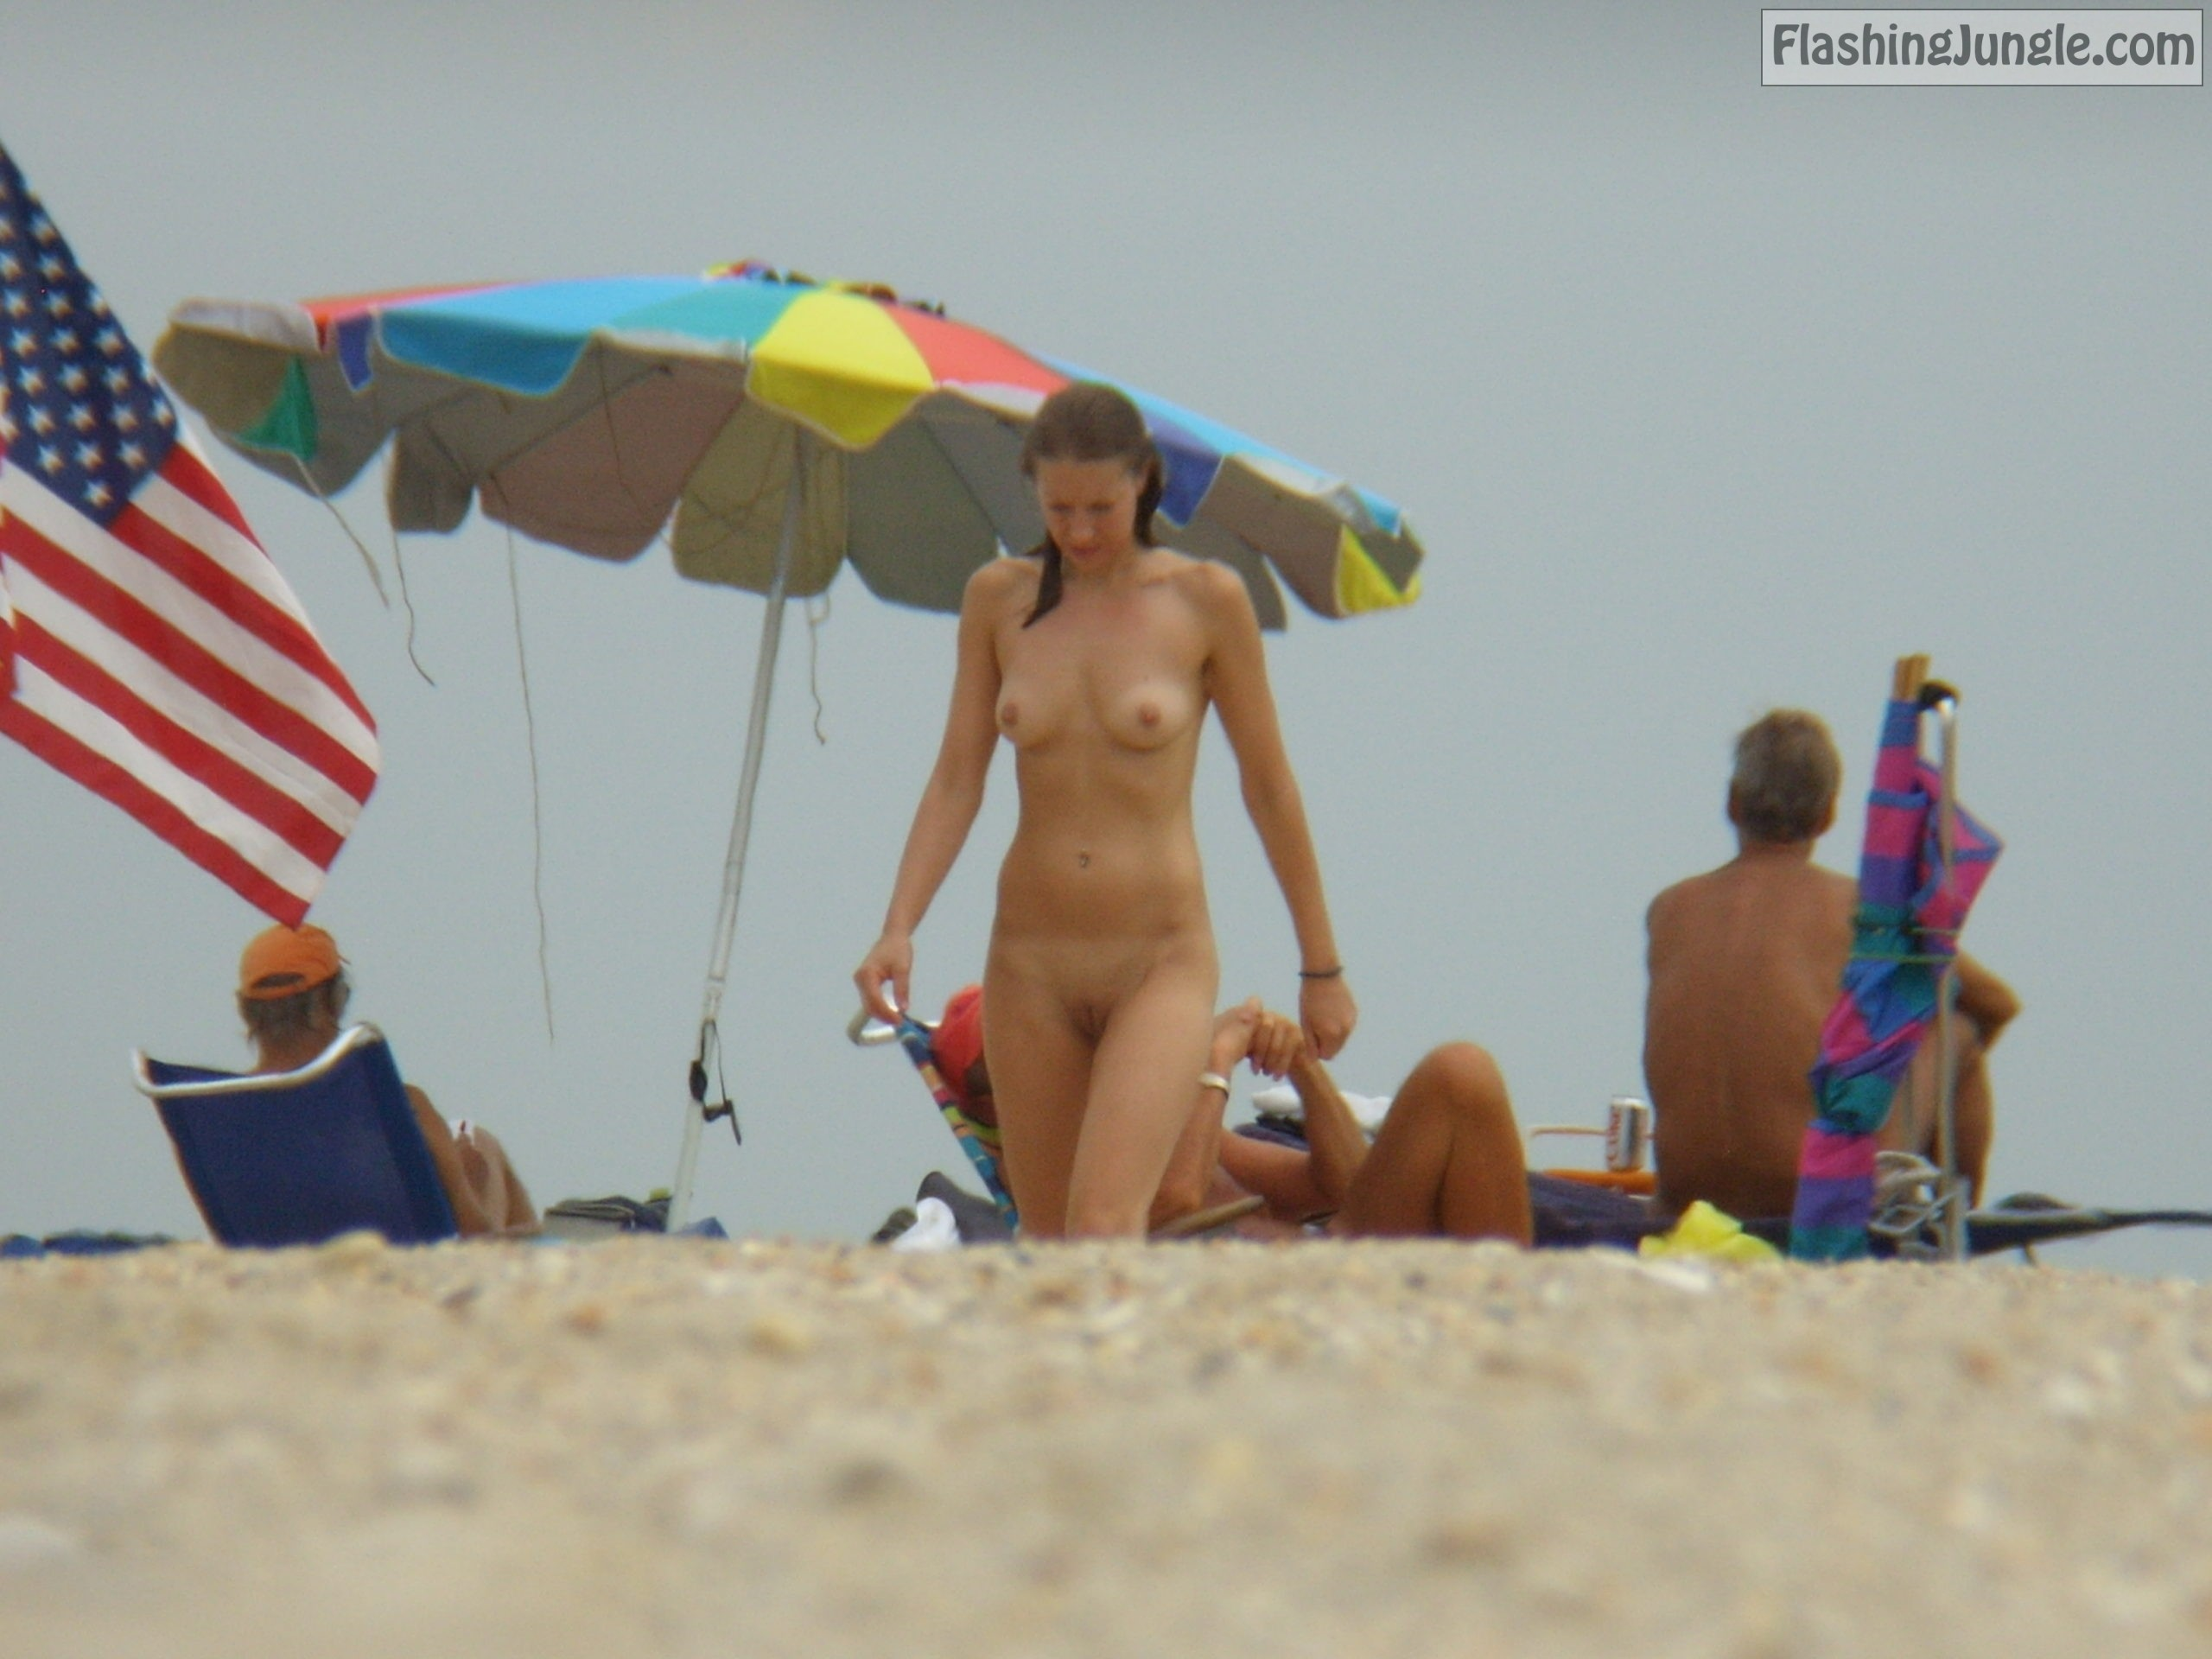 Slim beach bitch (4) voyeur real nudity nude beach